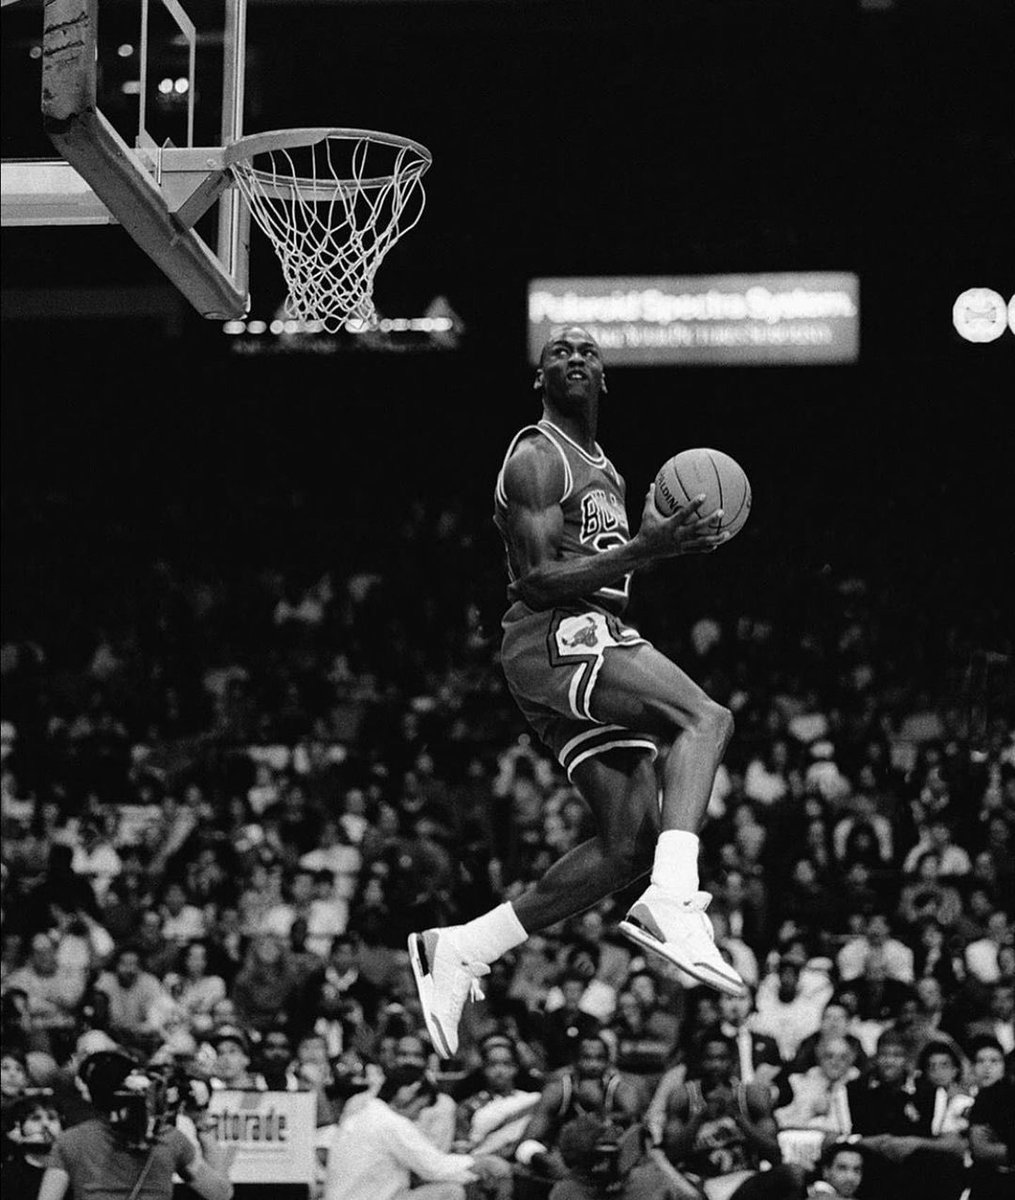 One of the most iconic sequences of photos. 🔥 https://t.co/Yogmkw2smO